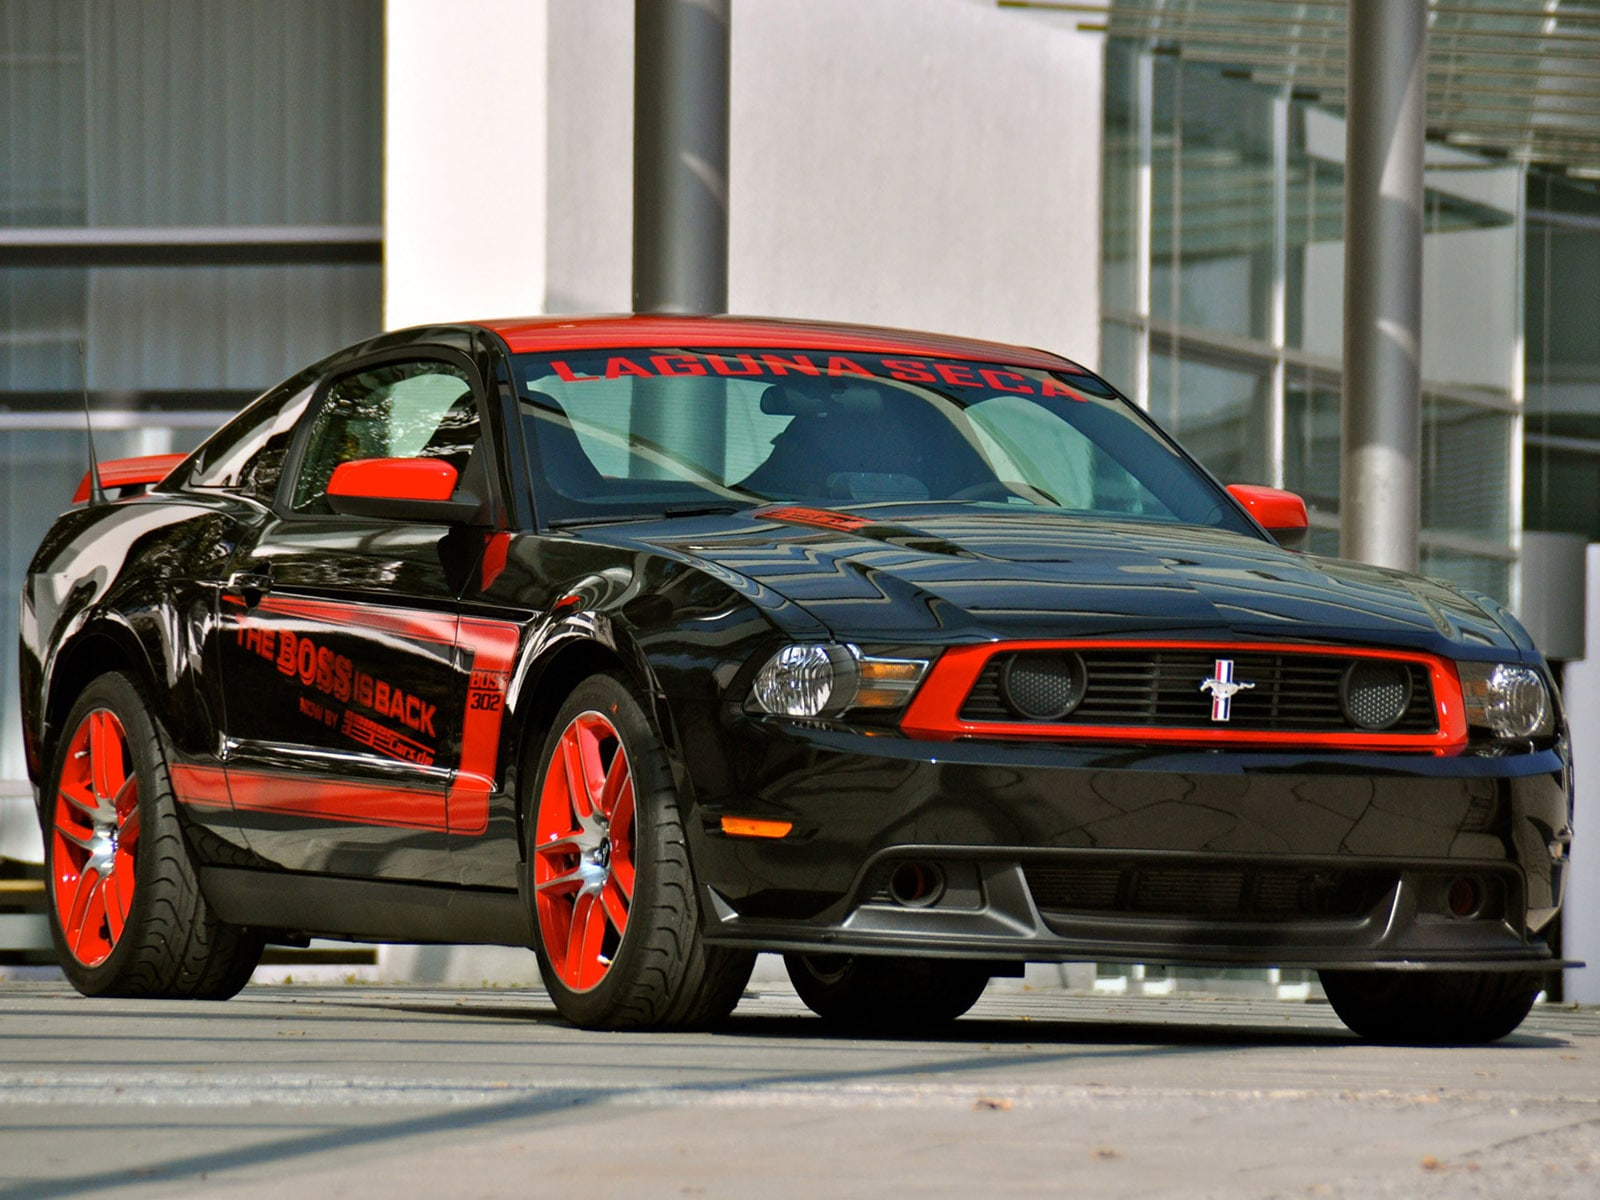 Ford Mustang Boss 302 Laguna Seca Desktop wallpaper